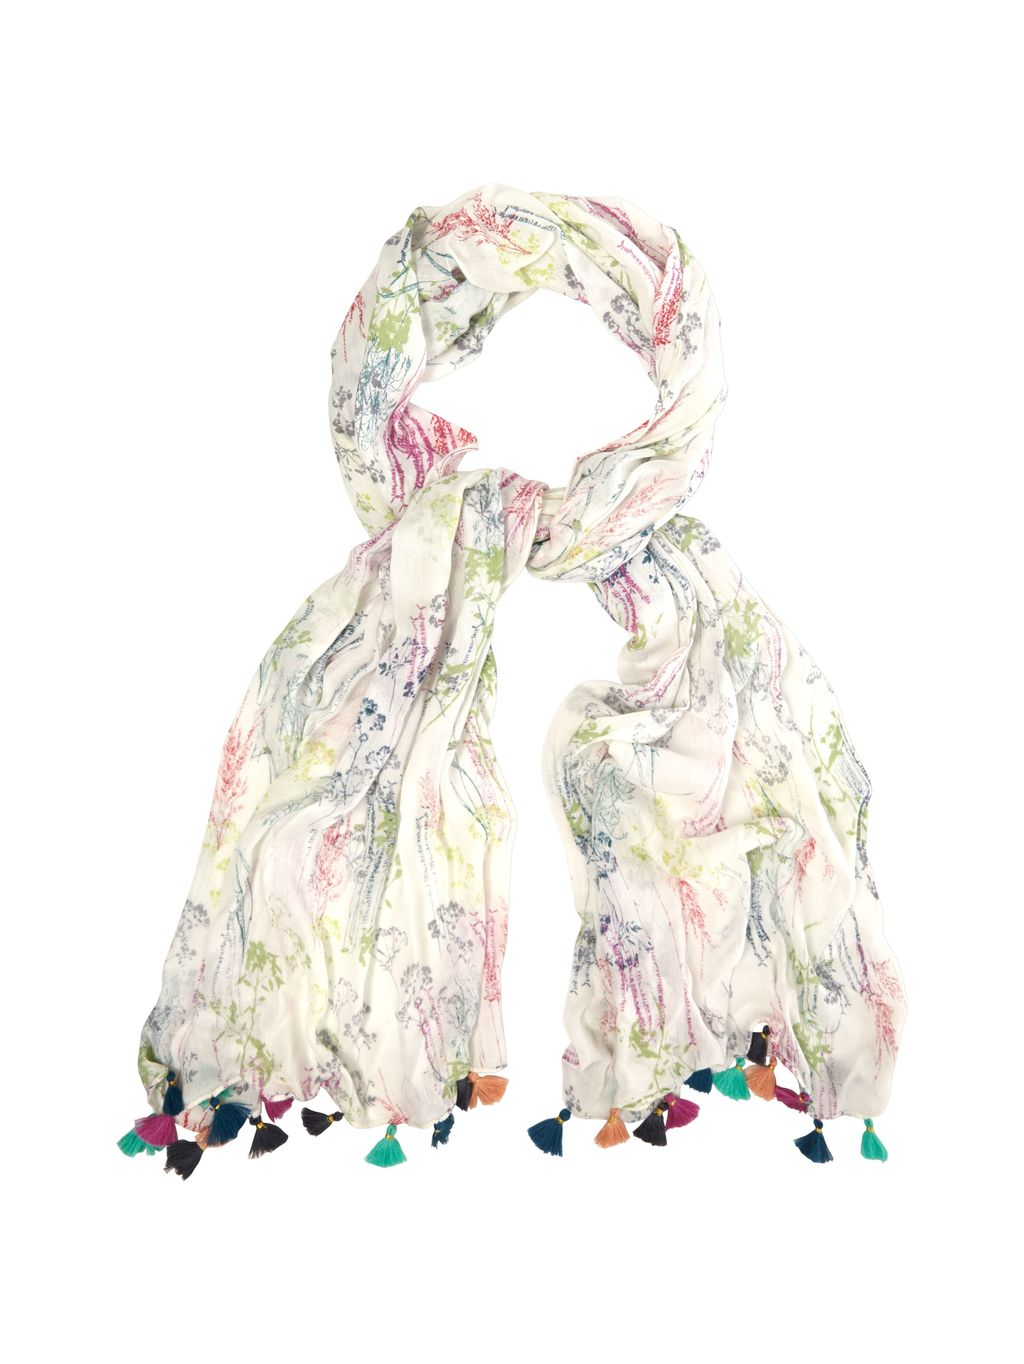 Fragrant Meadow Scarf, Multi Coloured - predominant colour: ivory/cream; occasions: casual; type of pattern: light; style: regular; size: standard; material: fabric; embellishment: tassels; pattern: patterned/print; multicoloured: multicoloured; season: s/s 2016; wardrobe: highlight